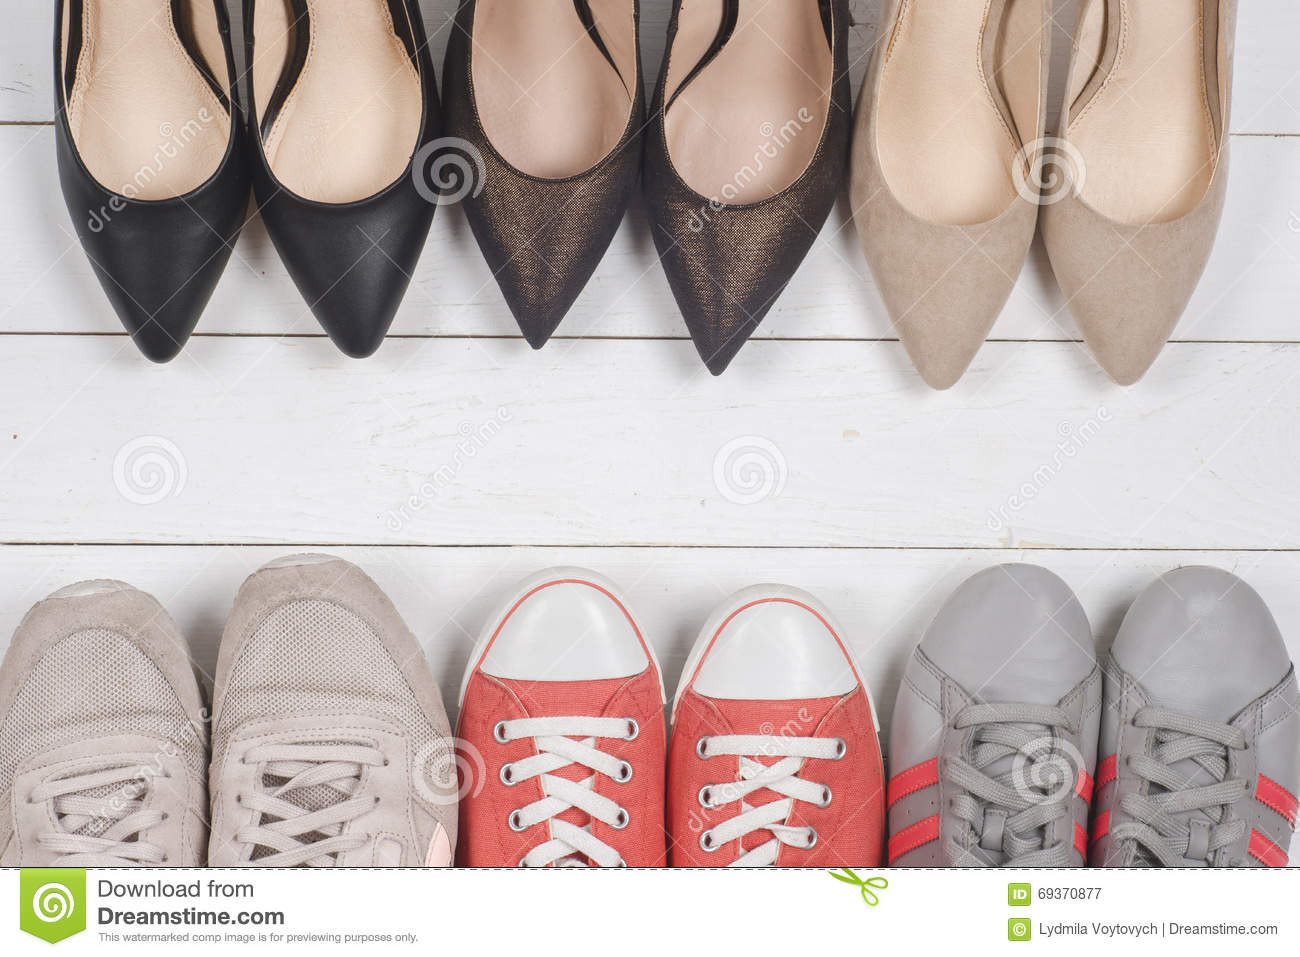 a picture of different shoes of several types of